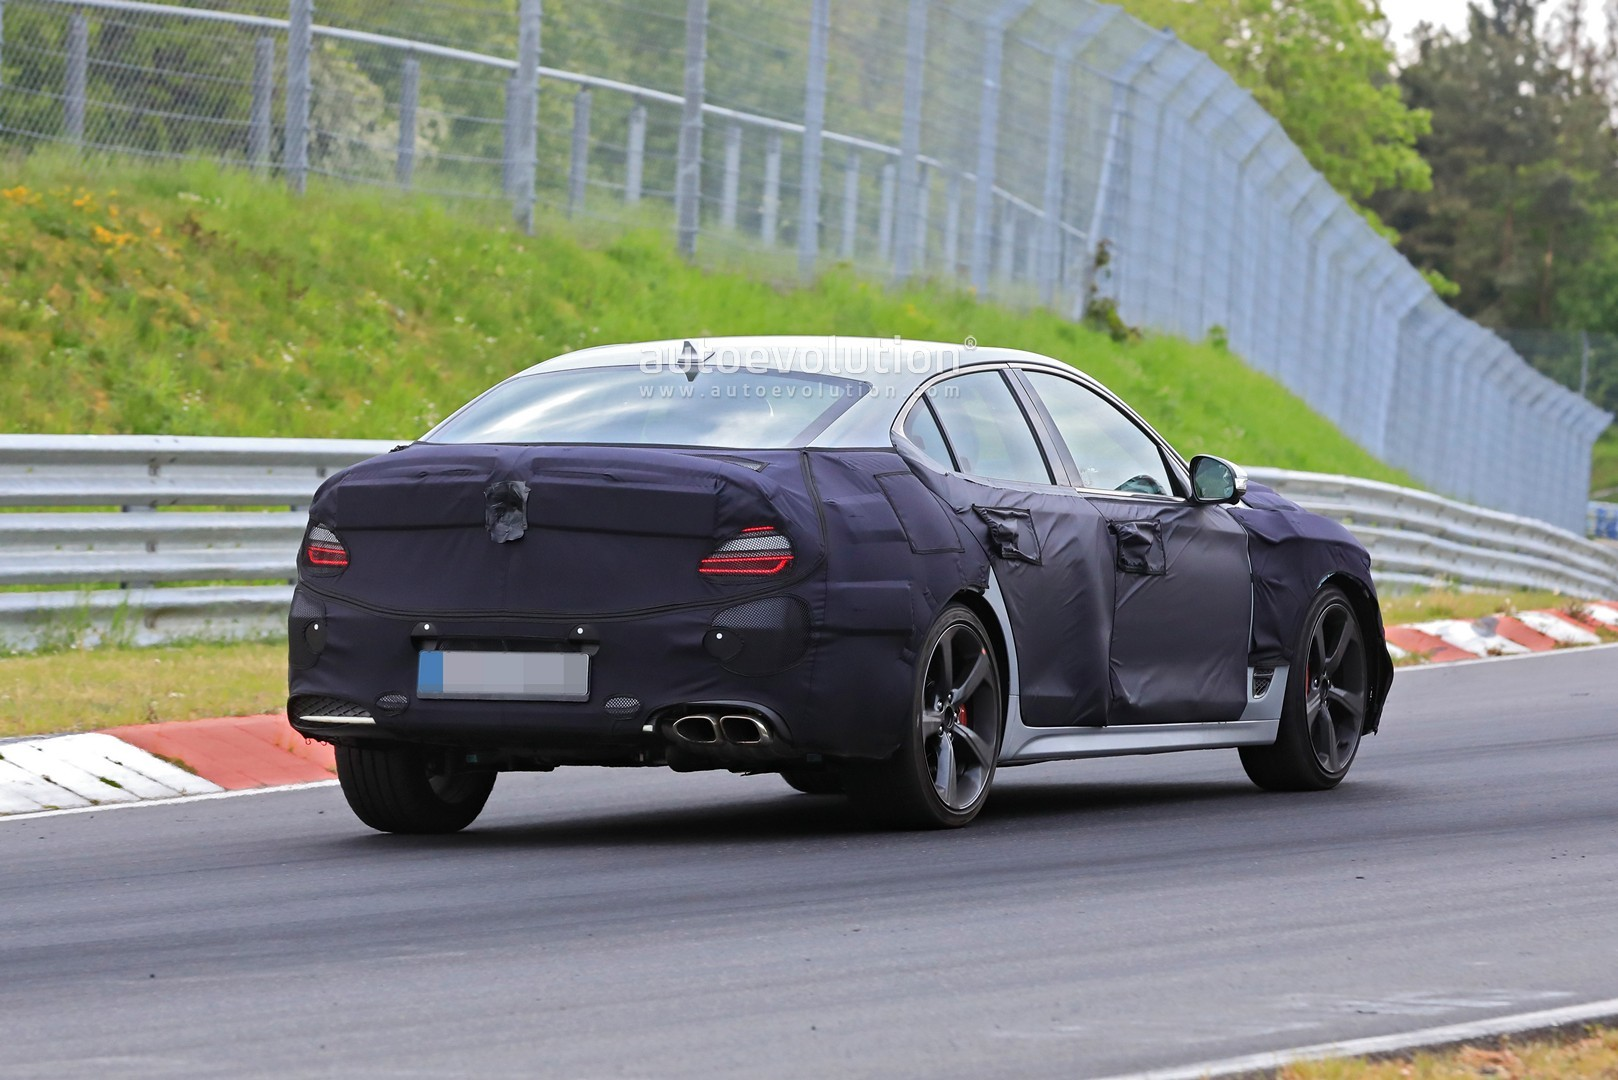 2021 Genesis G70 Spotted Testing 2.5-Liter Turbo at the ...